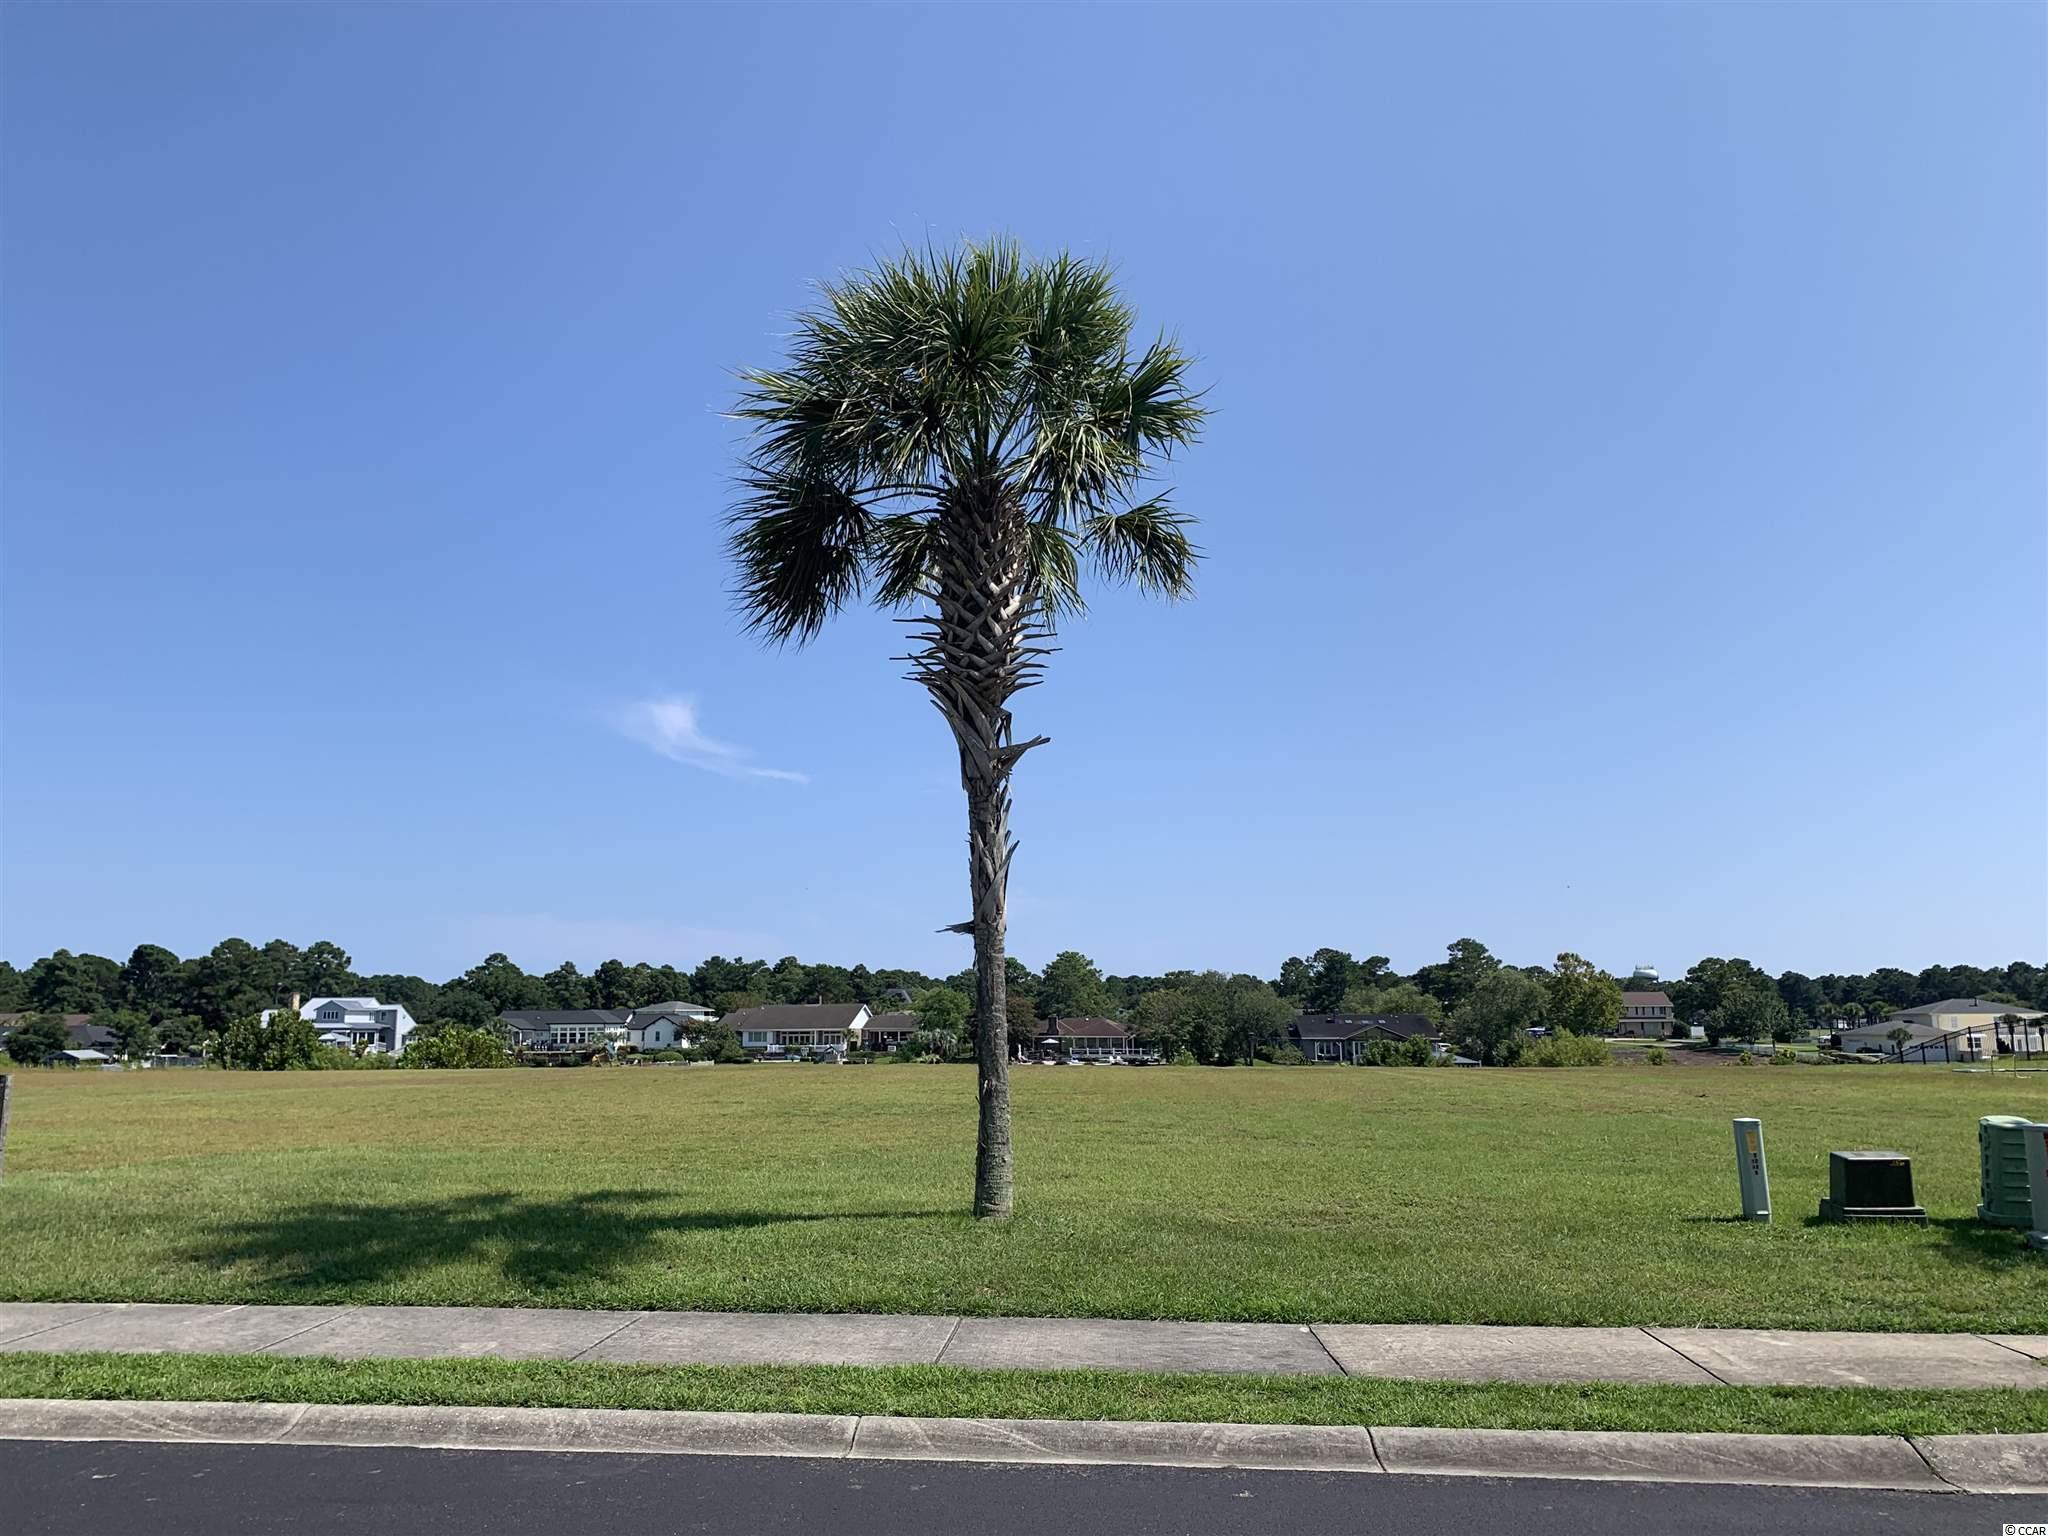 Gorgeous direct waterway lot in the highly desired neighborhood of Waterway Palms Plantation. This lot is located away from the main drag, and towards the end of a dead end street, allowing for added privacy, and less traffic.  Ad your own personal dock, and enjoy the boaters life with all the benefits of living directly on the Waterway. This inland channel extends from Boston to the southern tip of Florida, with direct access into the ocean throughout. Waterway Palms is a 24/7 gated community with an amenities center unlike any in the area. Featuring resort style pool, tennis courts, basketball court, gym, bocce, cornhole, boat launch, day docks, and massive two story amenity building. Waterway Palms allows quick access to Hwy 31, and just a short drive to shopping, restaurants and the beach